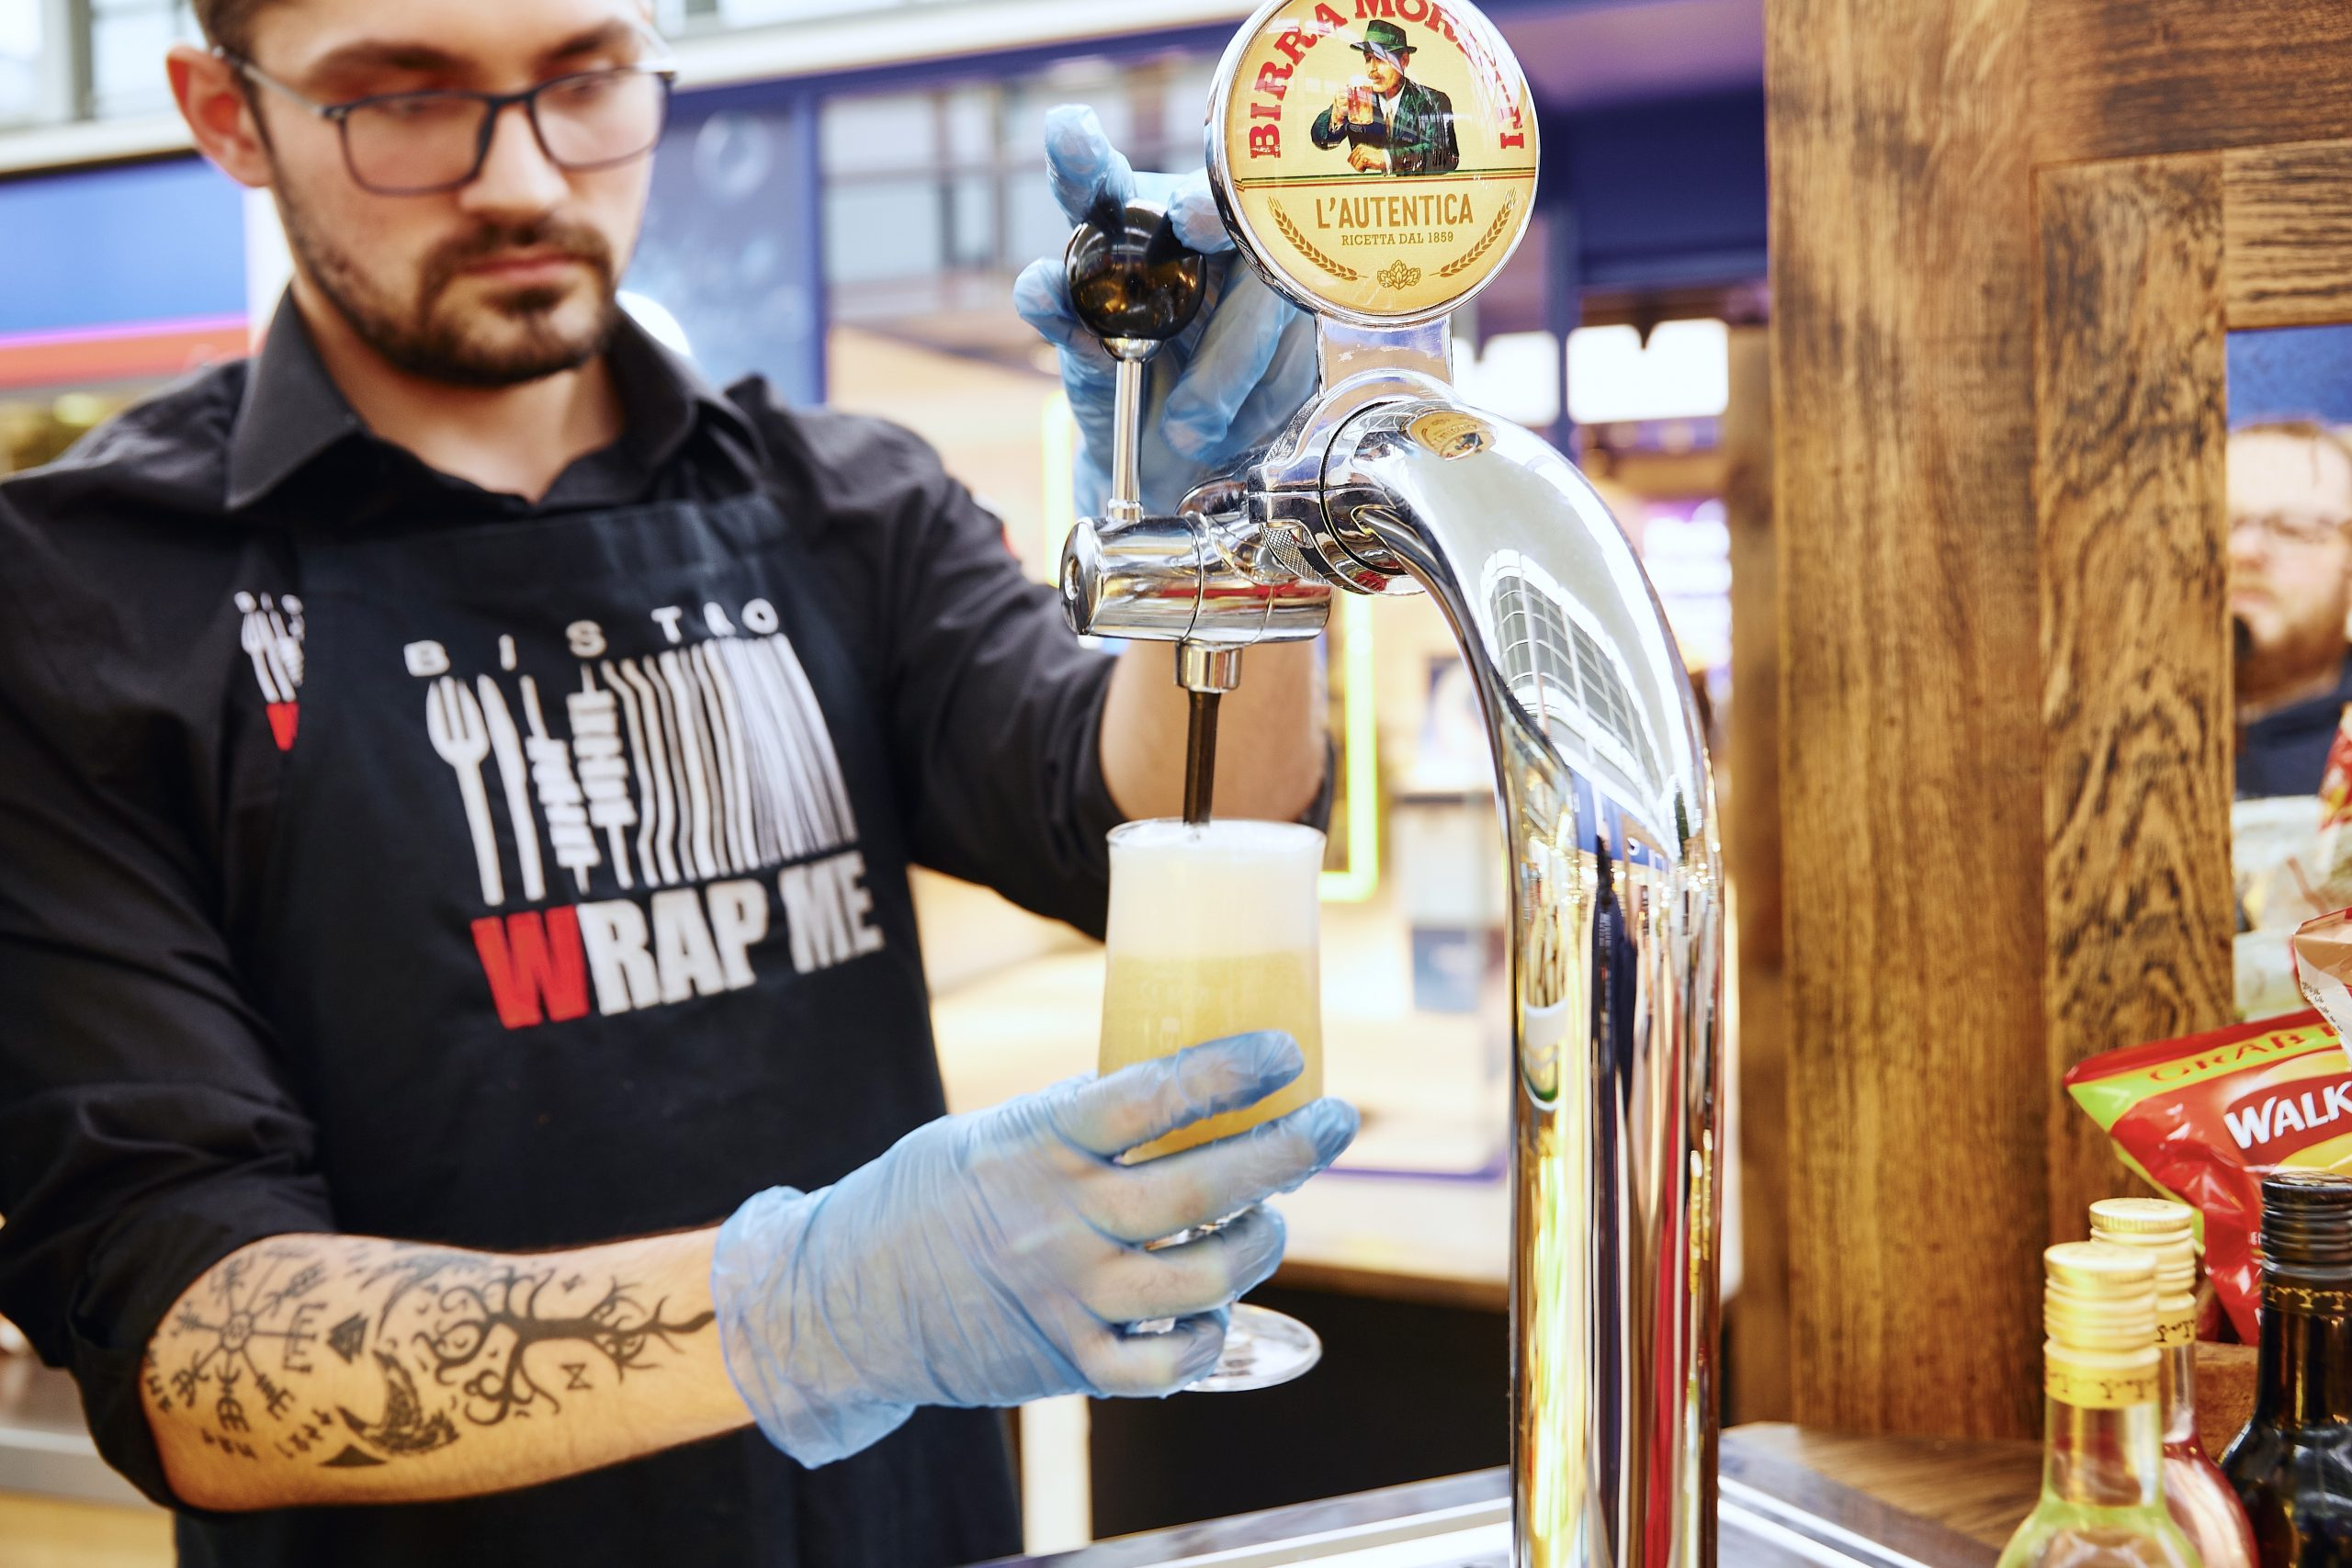 Bistro worker pours half pint of moretti